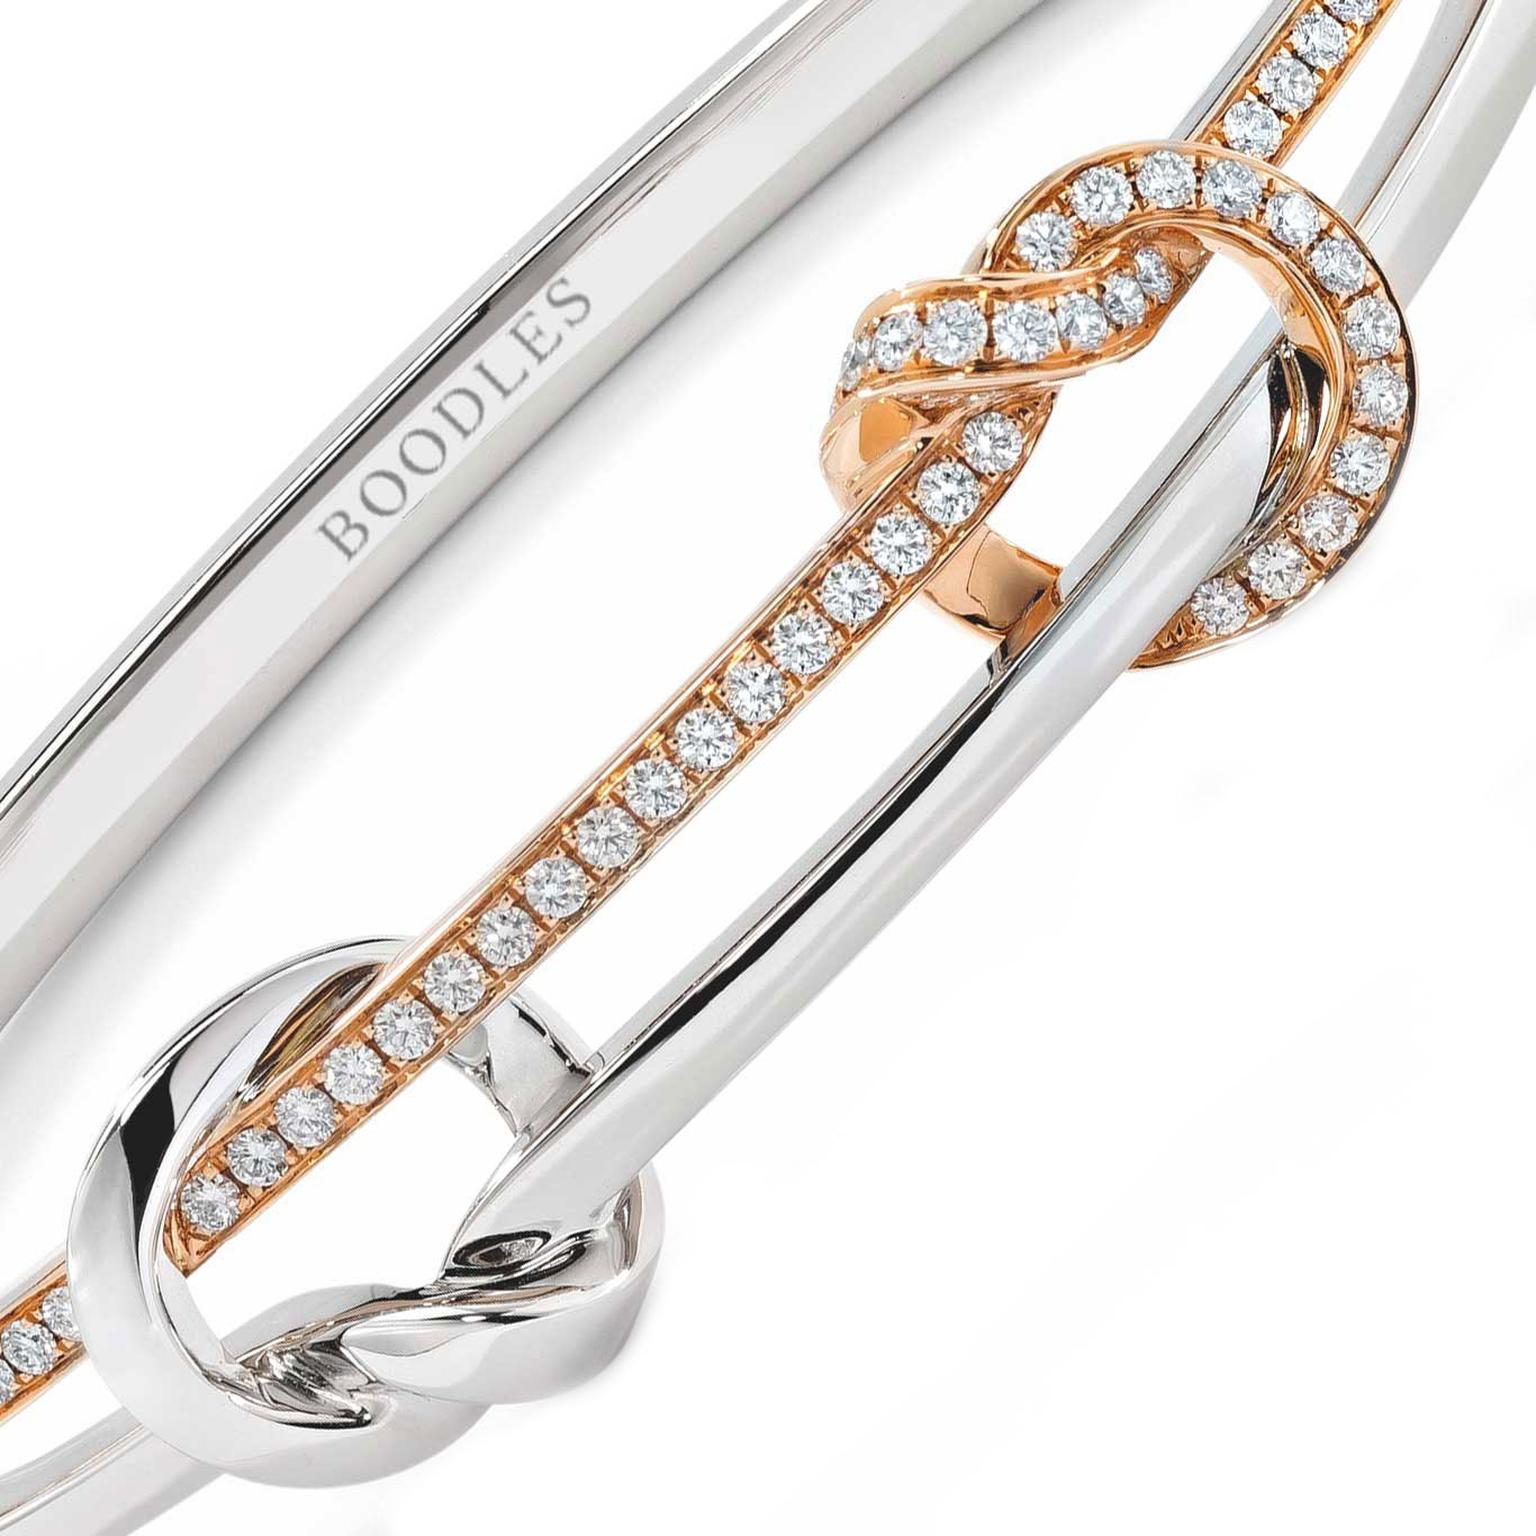 Boodles Knot bracelet in white and rose gold with diamonds